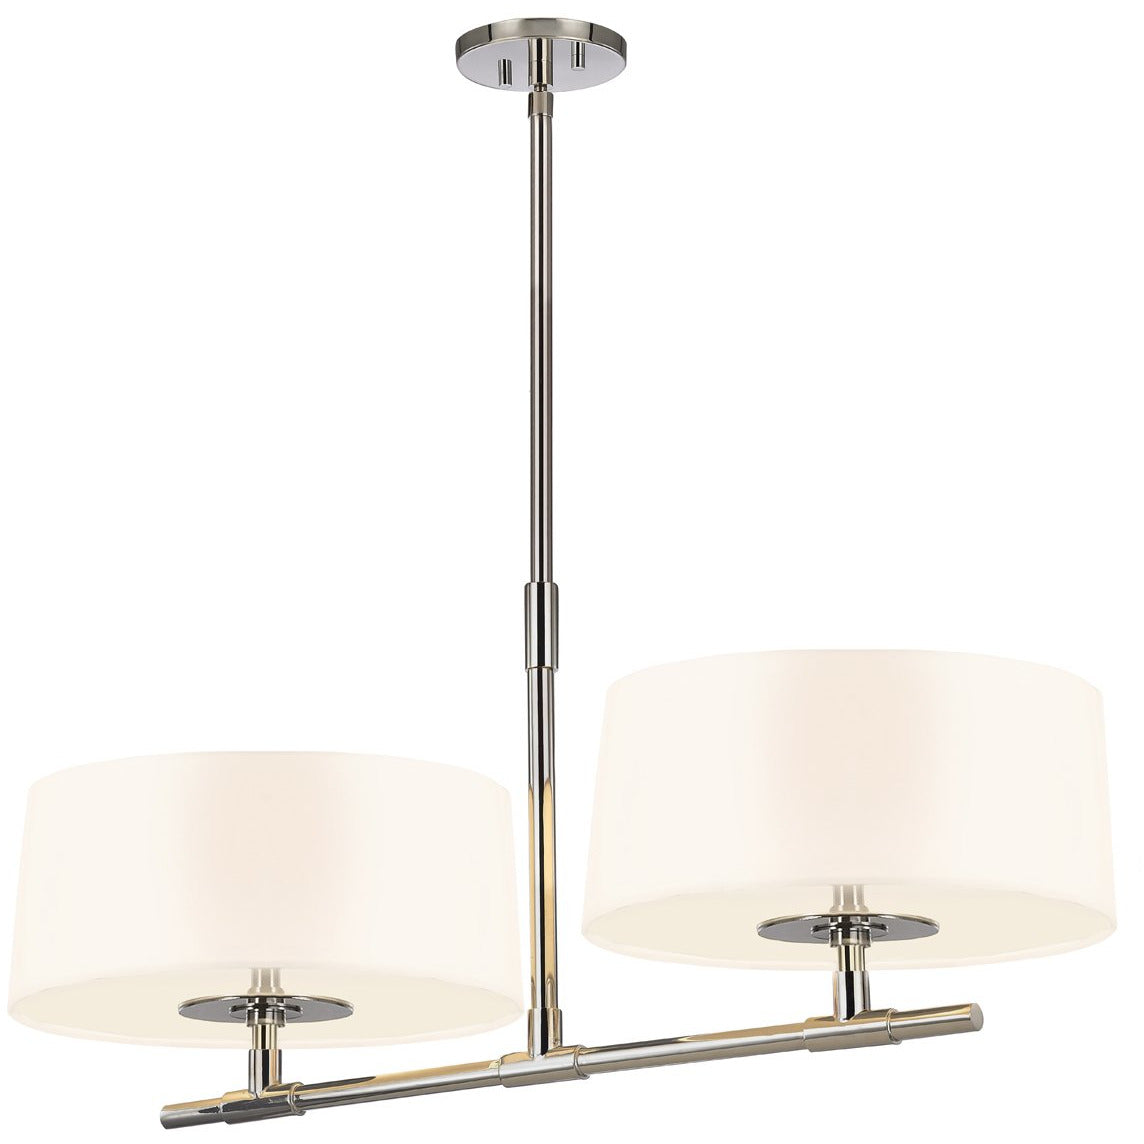 Sonneman - A Way of Light - 4952.35 - Four Light Pendant - Soho - Polished Nickel